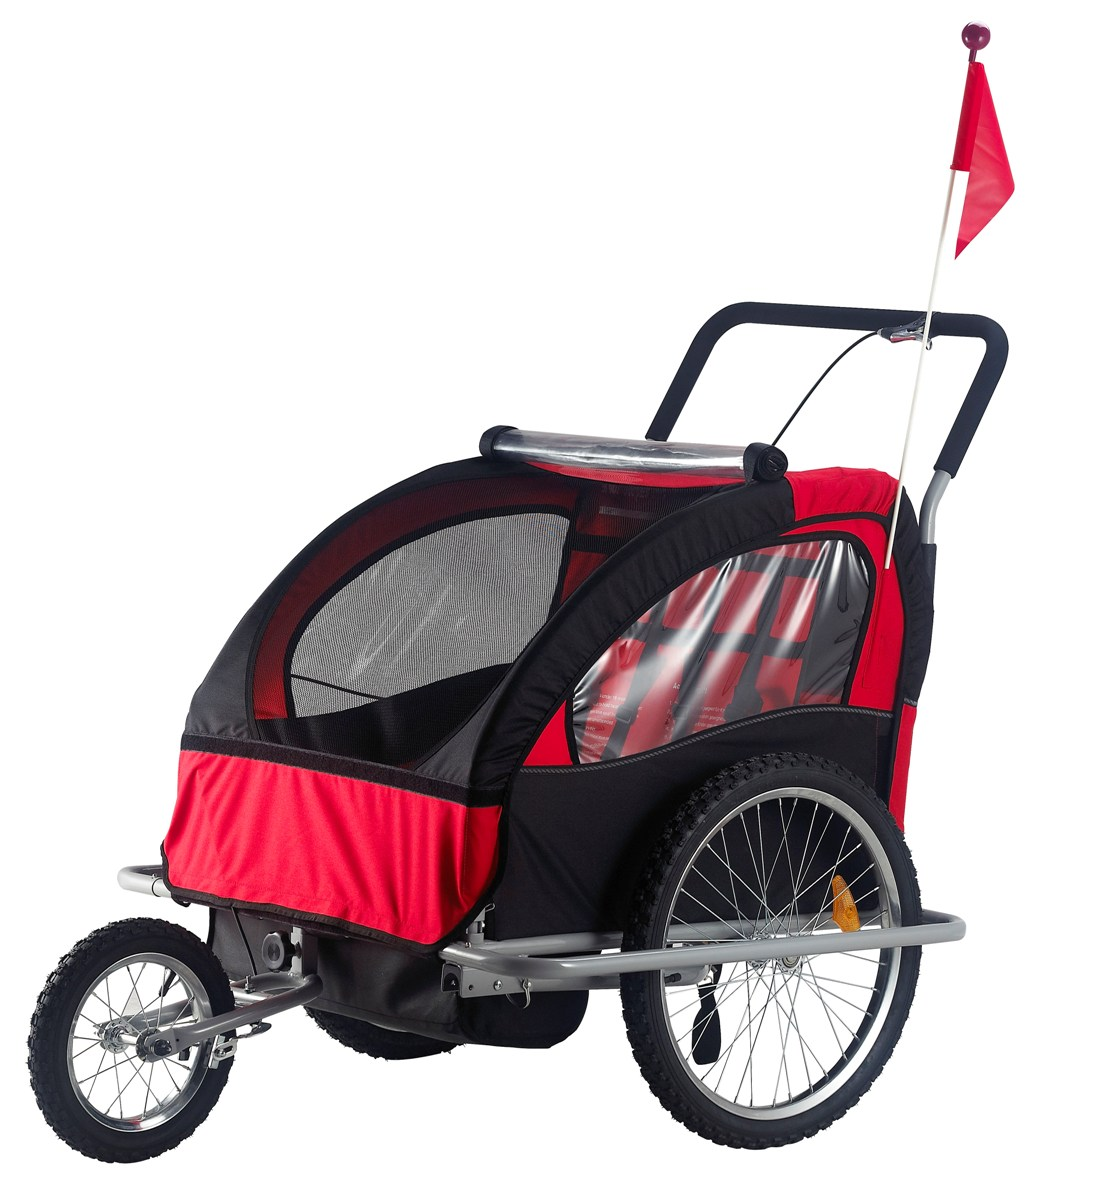 Bike Trailer And Stroller Video Search Engine At Search Com